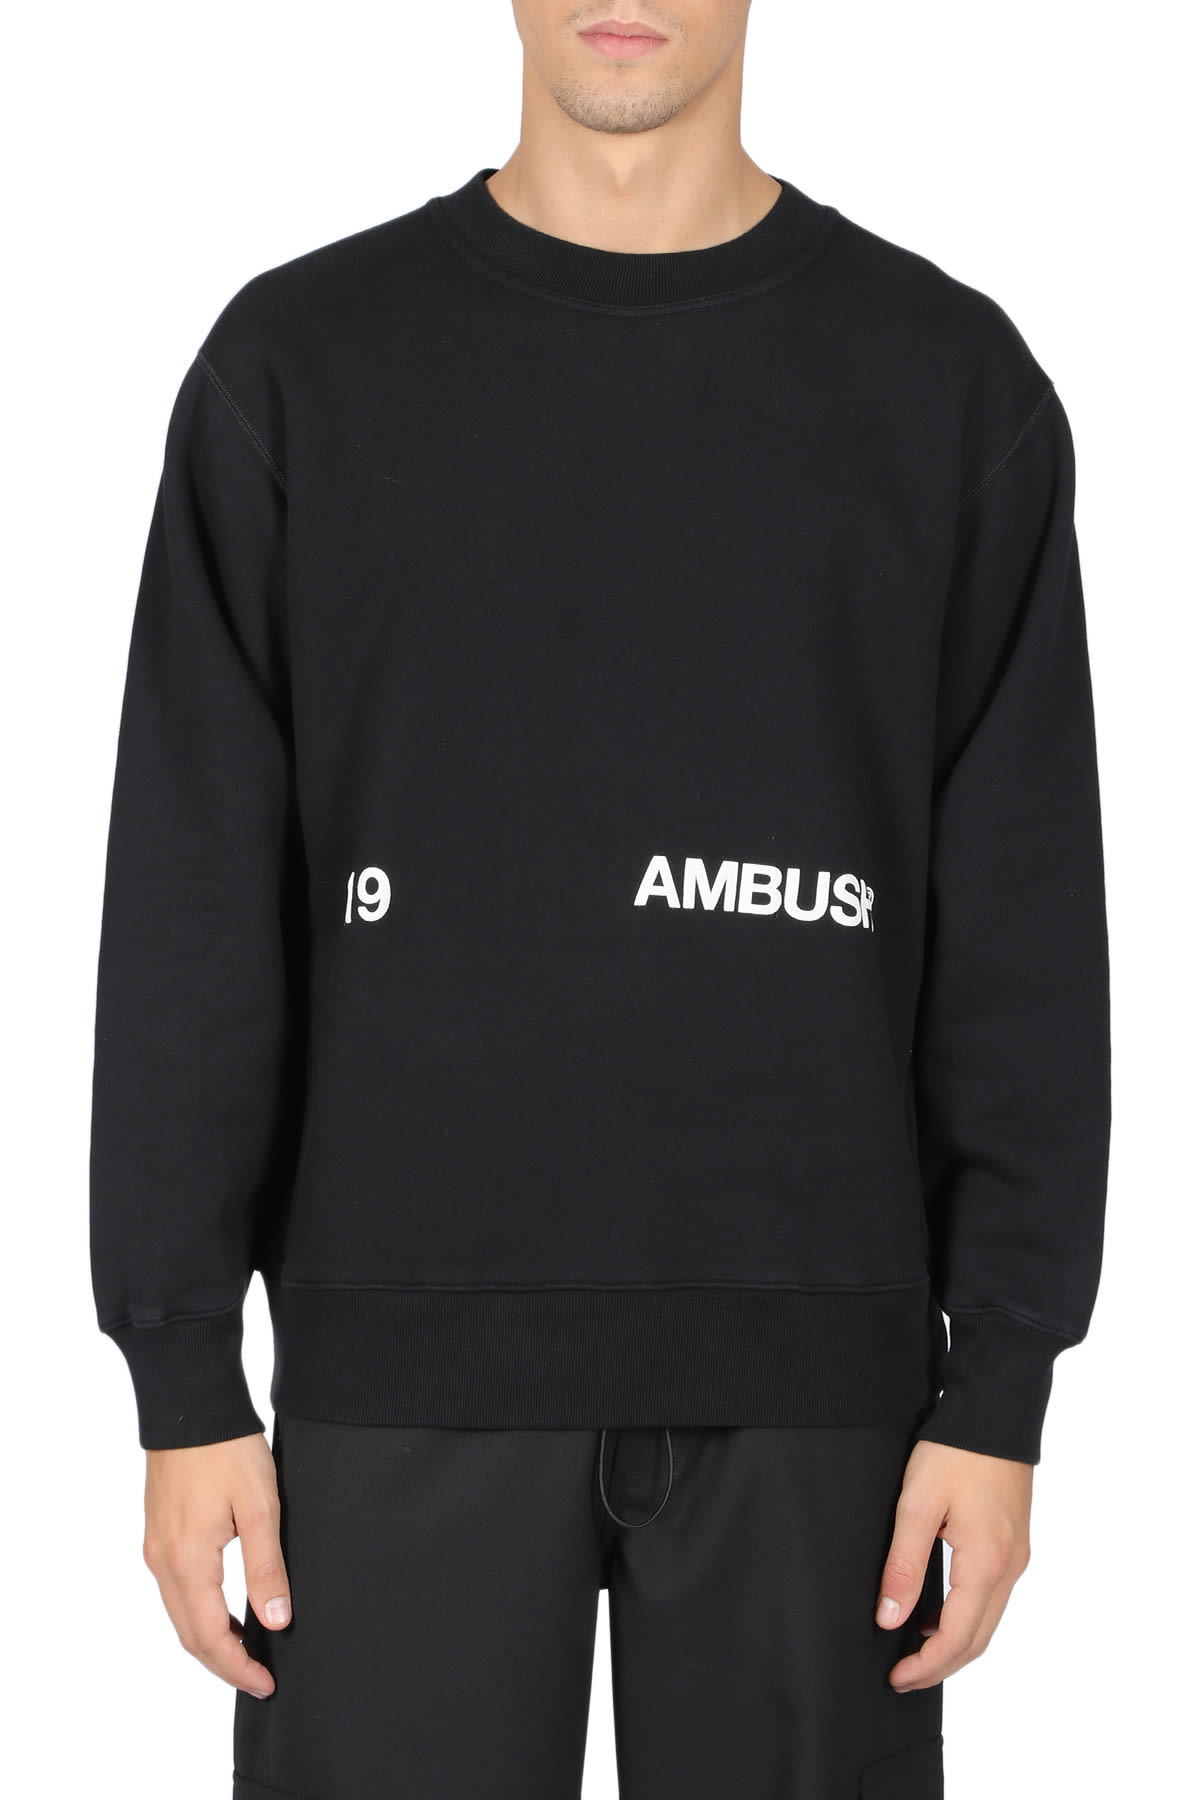 Ambush Tops AMBUSH Fleece